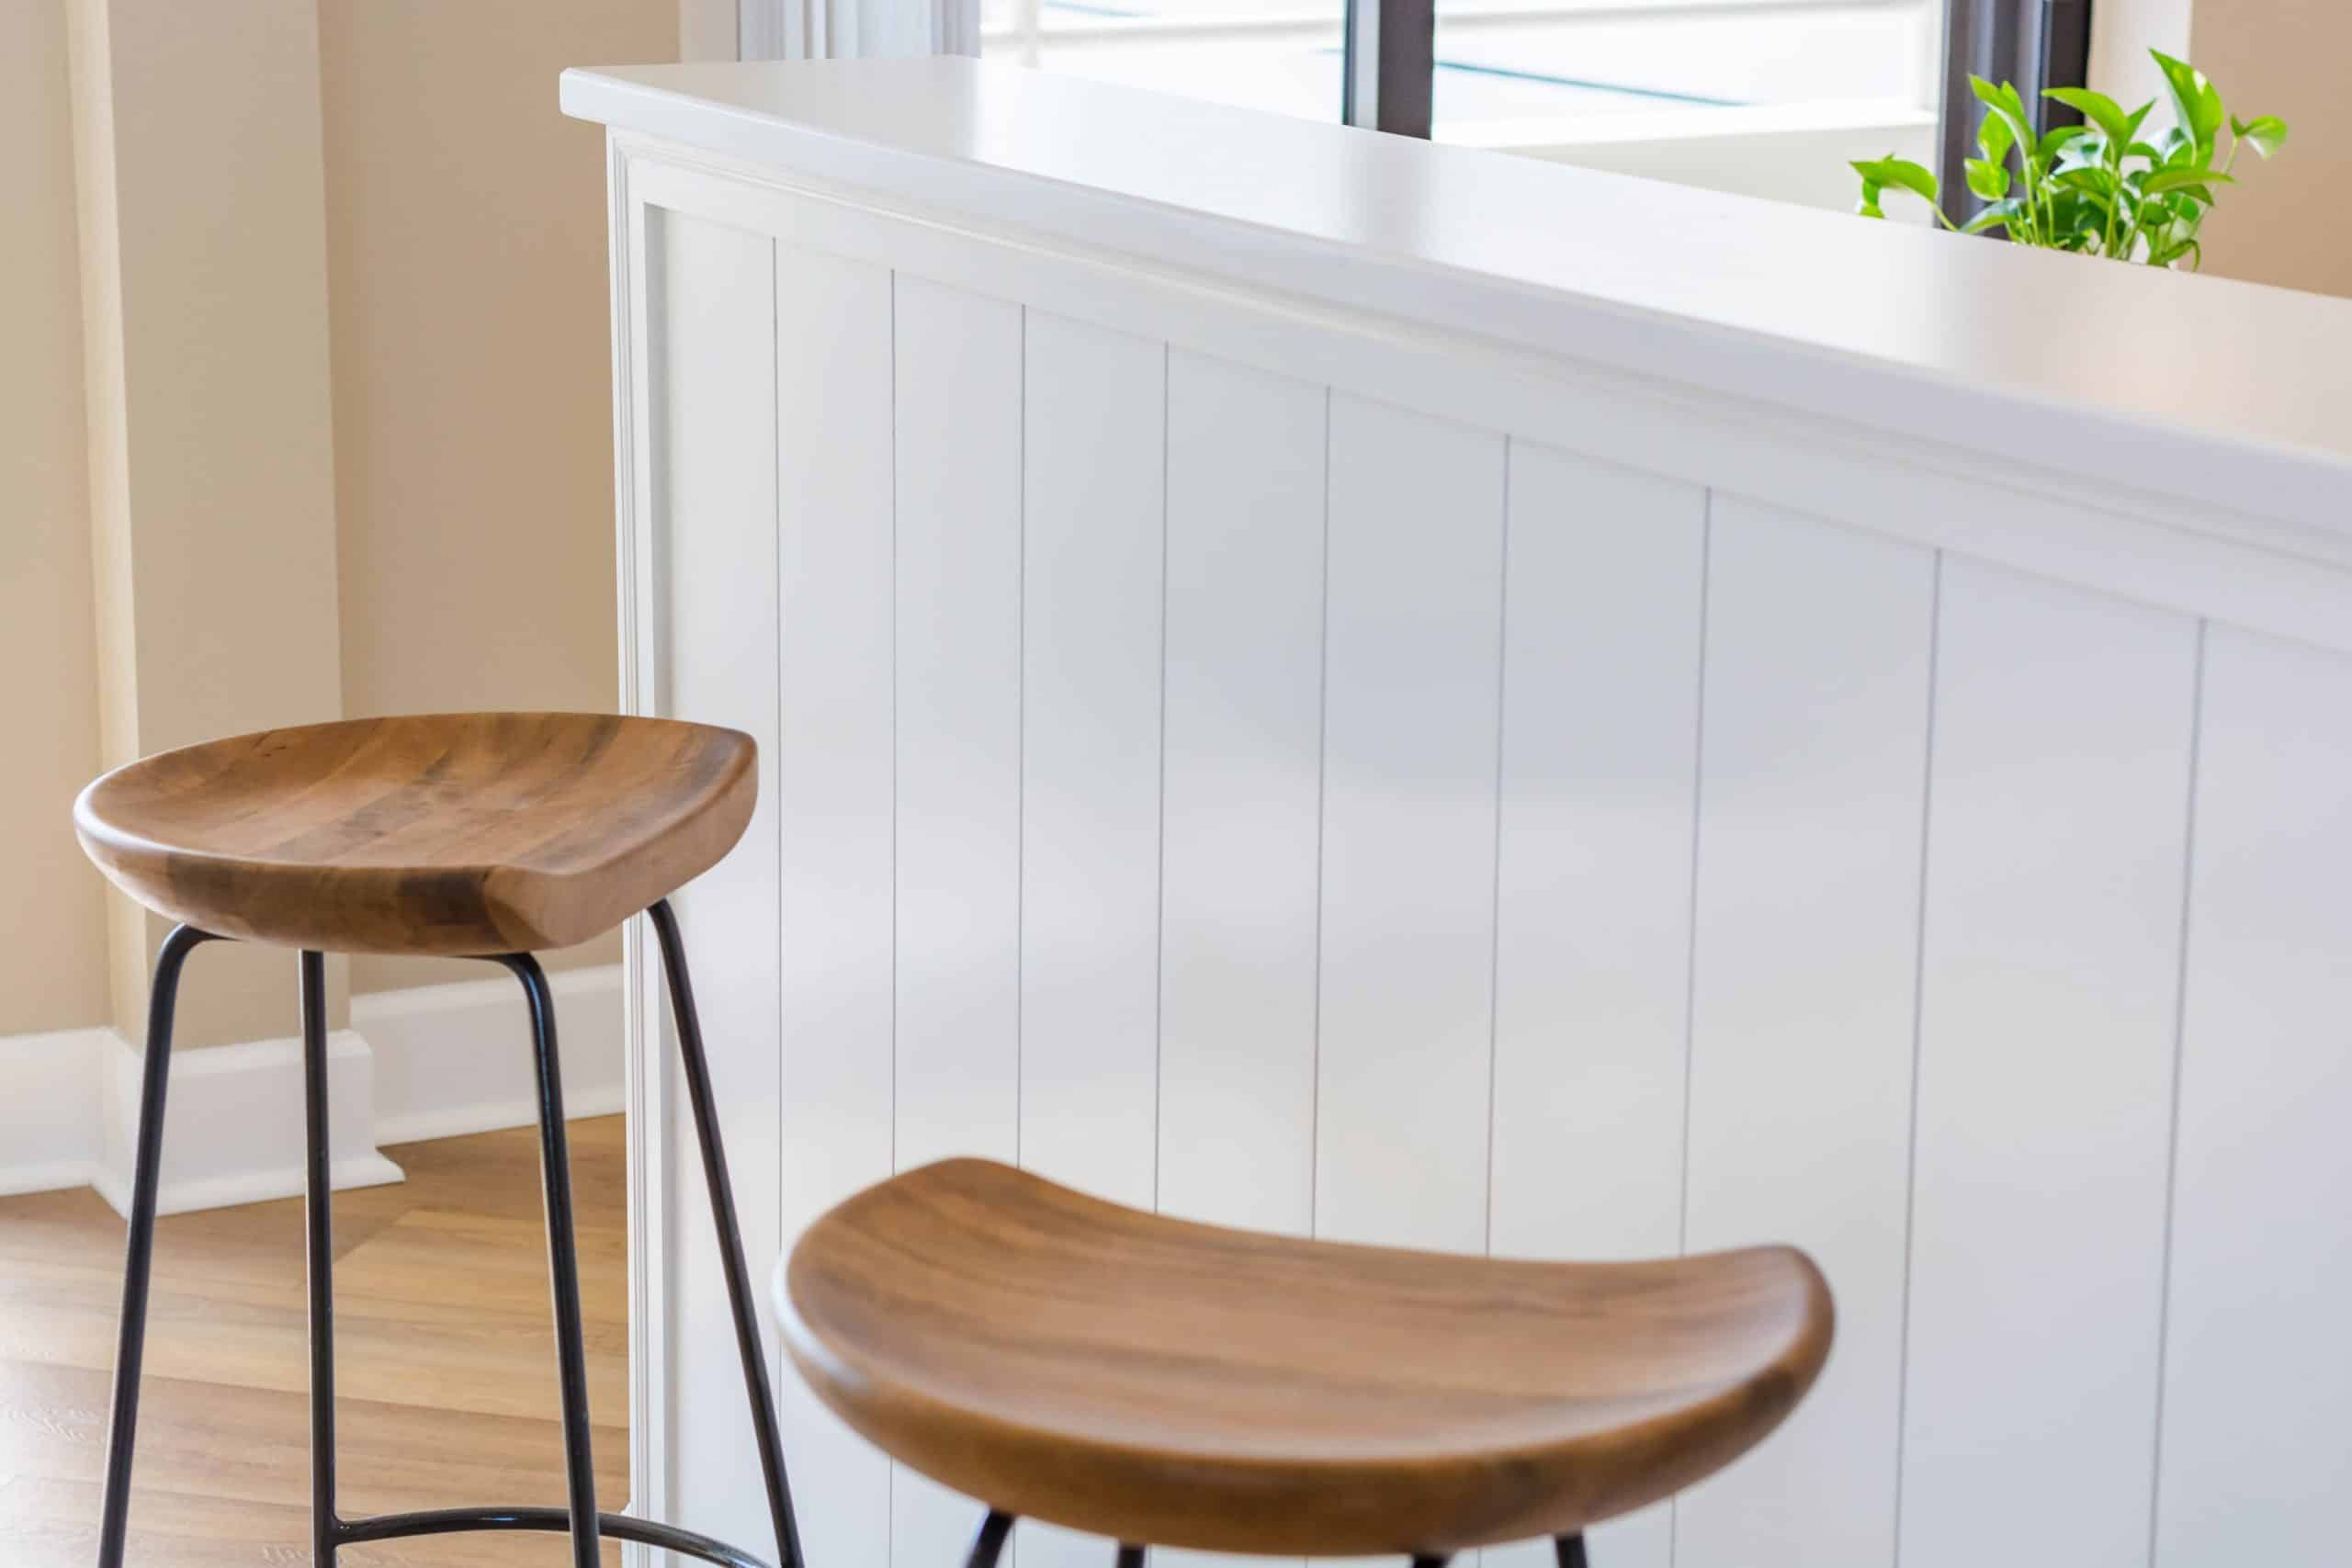 close up of stools in kitchen remodeling in Pelican Beach